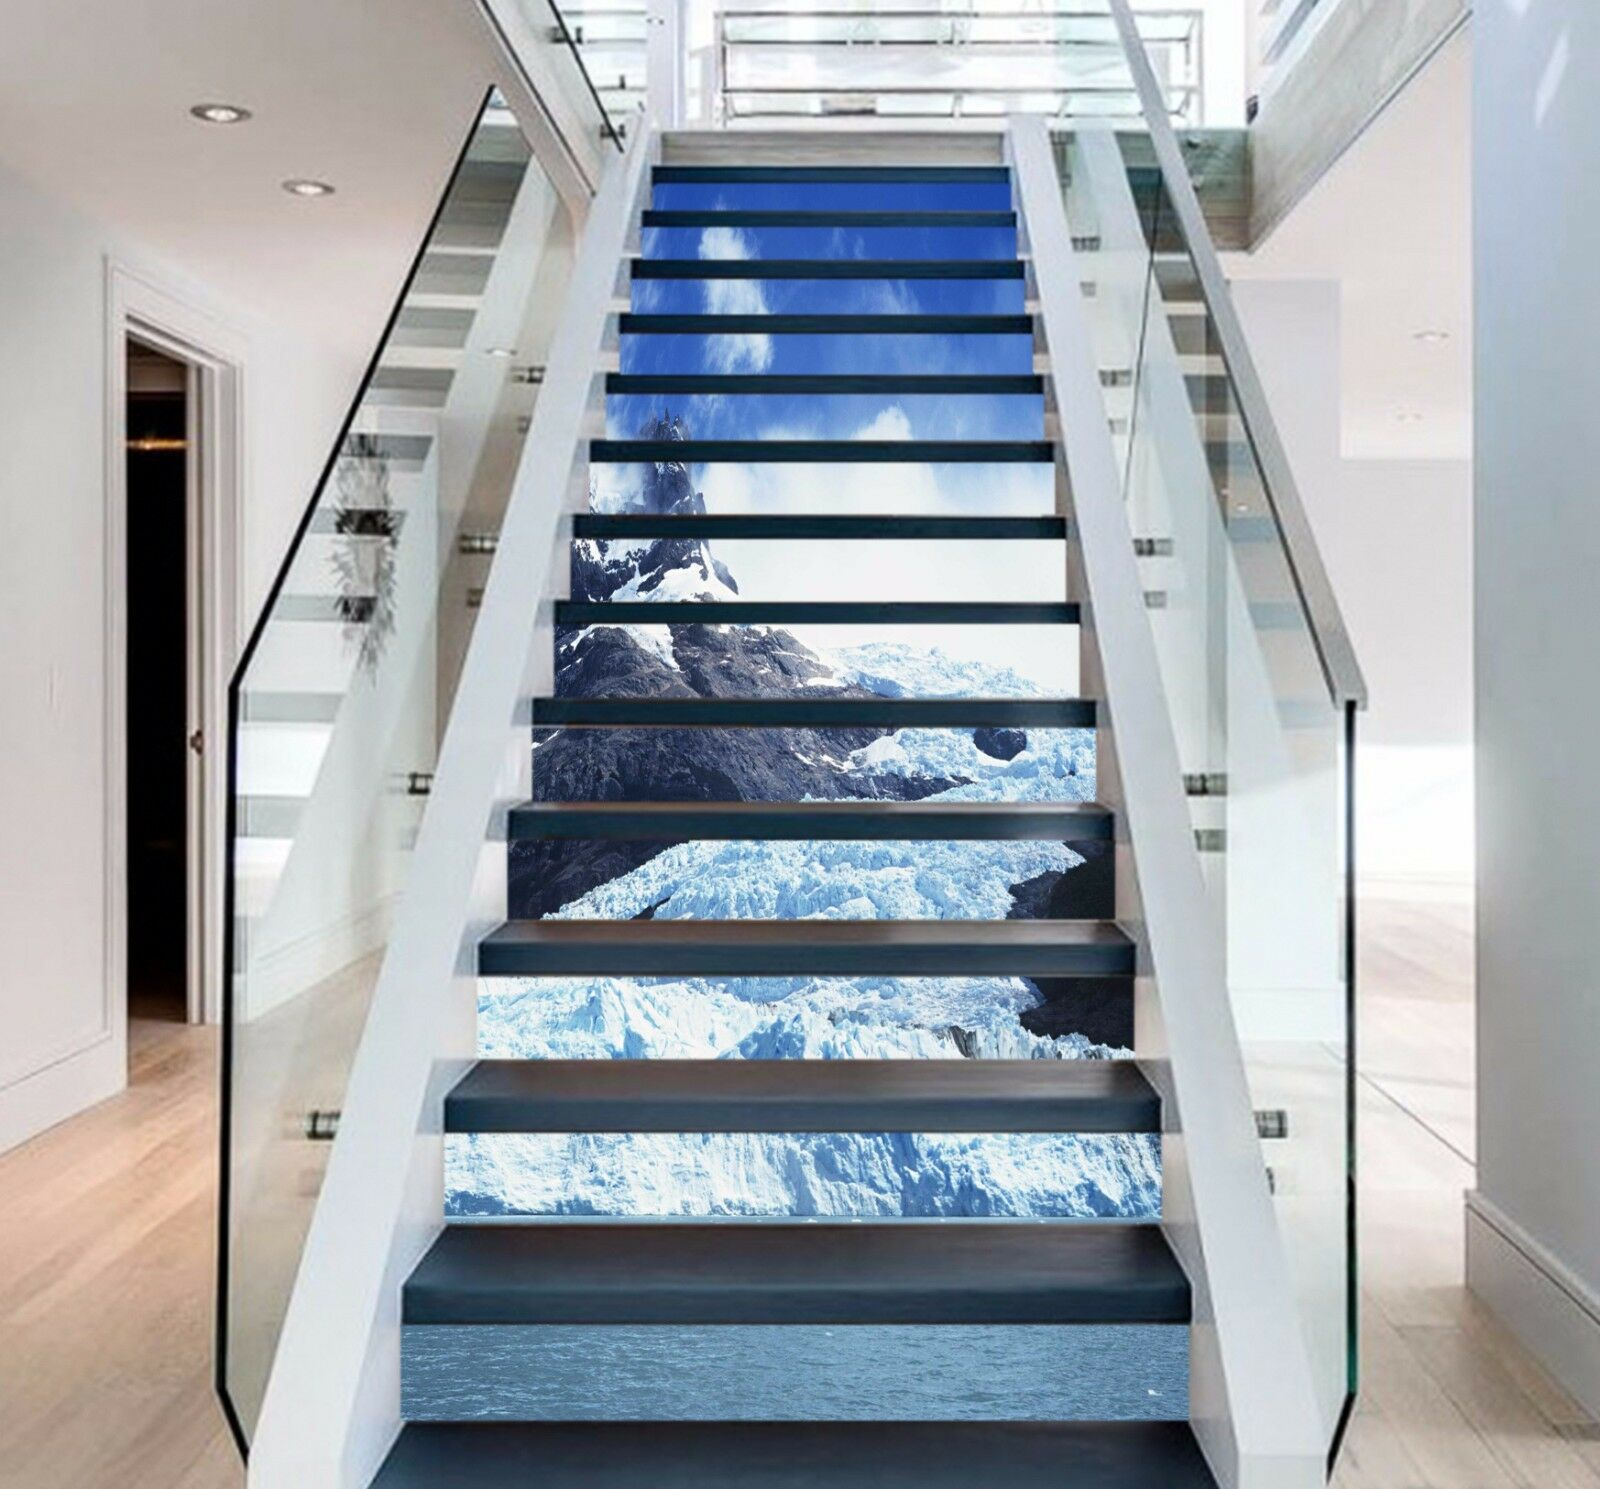 3D Snow Mountain 94 Stair Risers Decoration Photo Mural Vinyl Decal Wallpaper AU